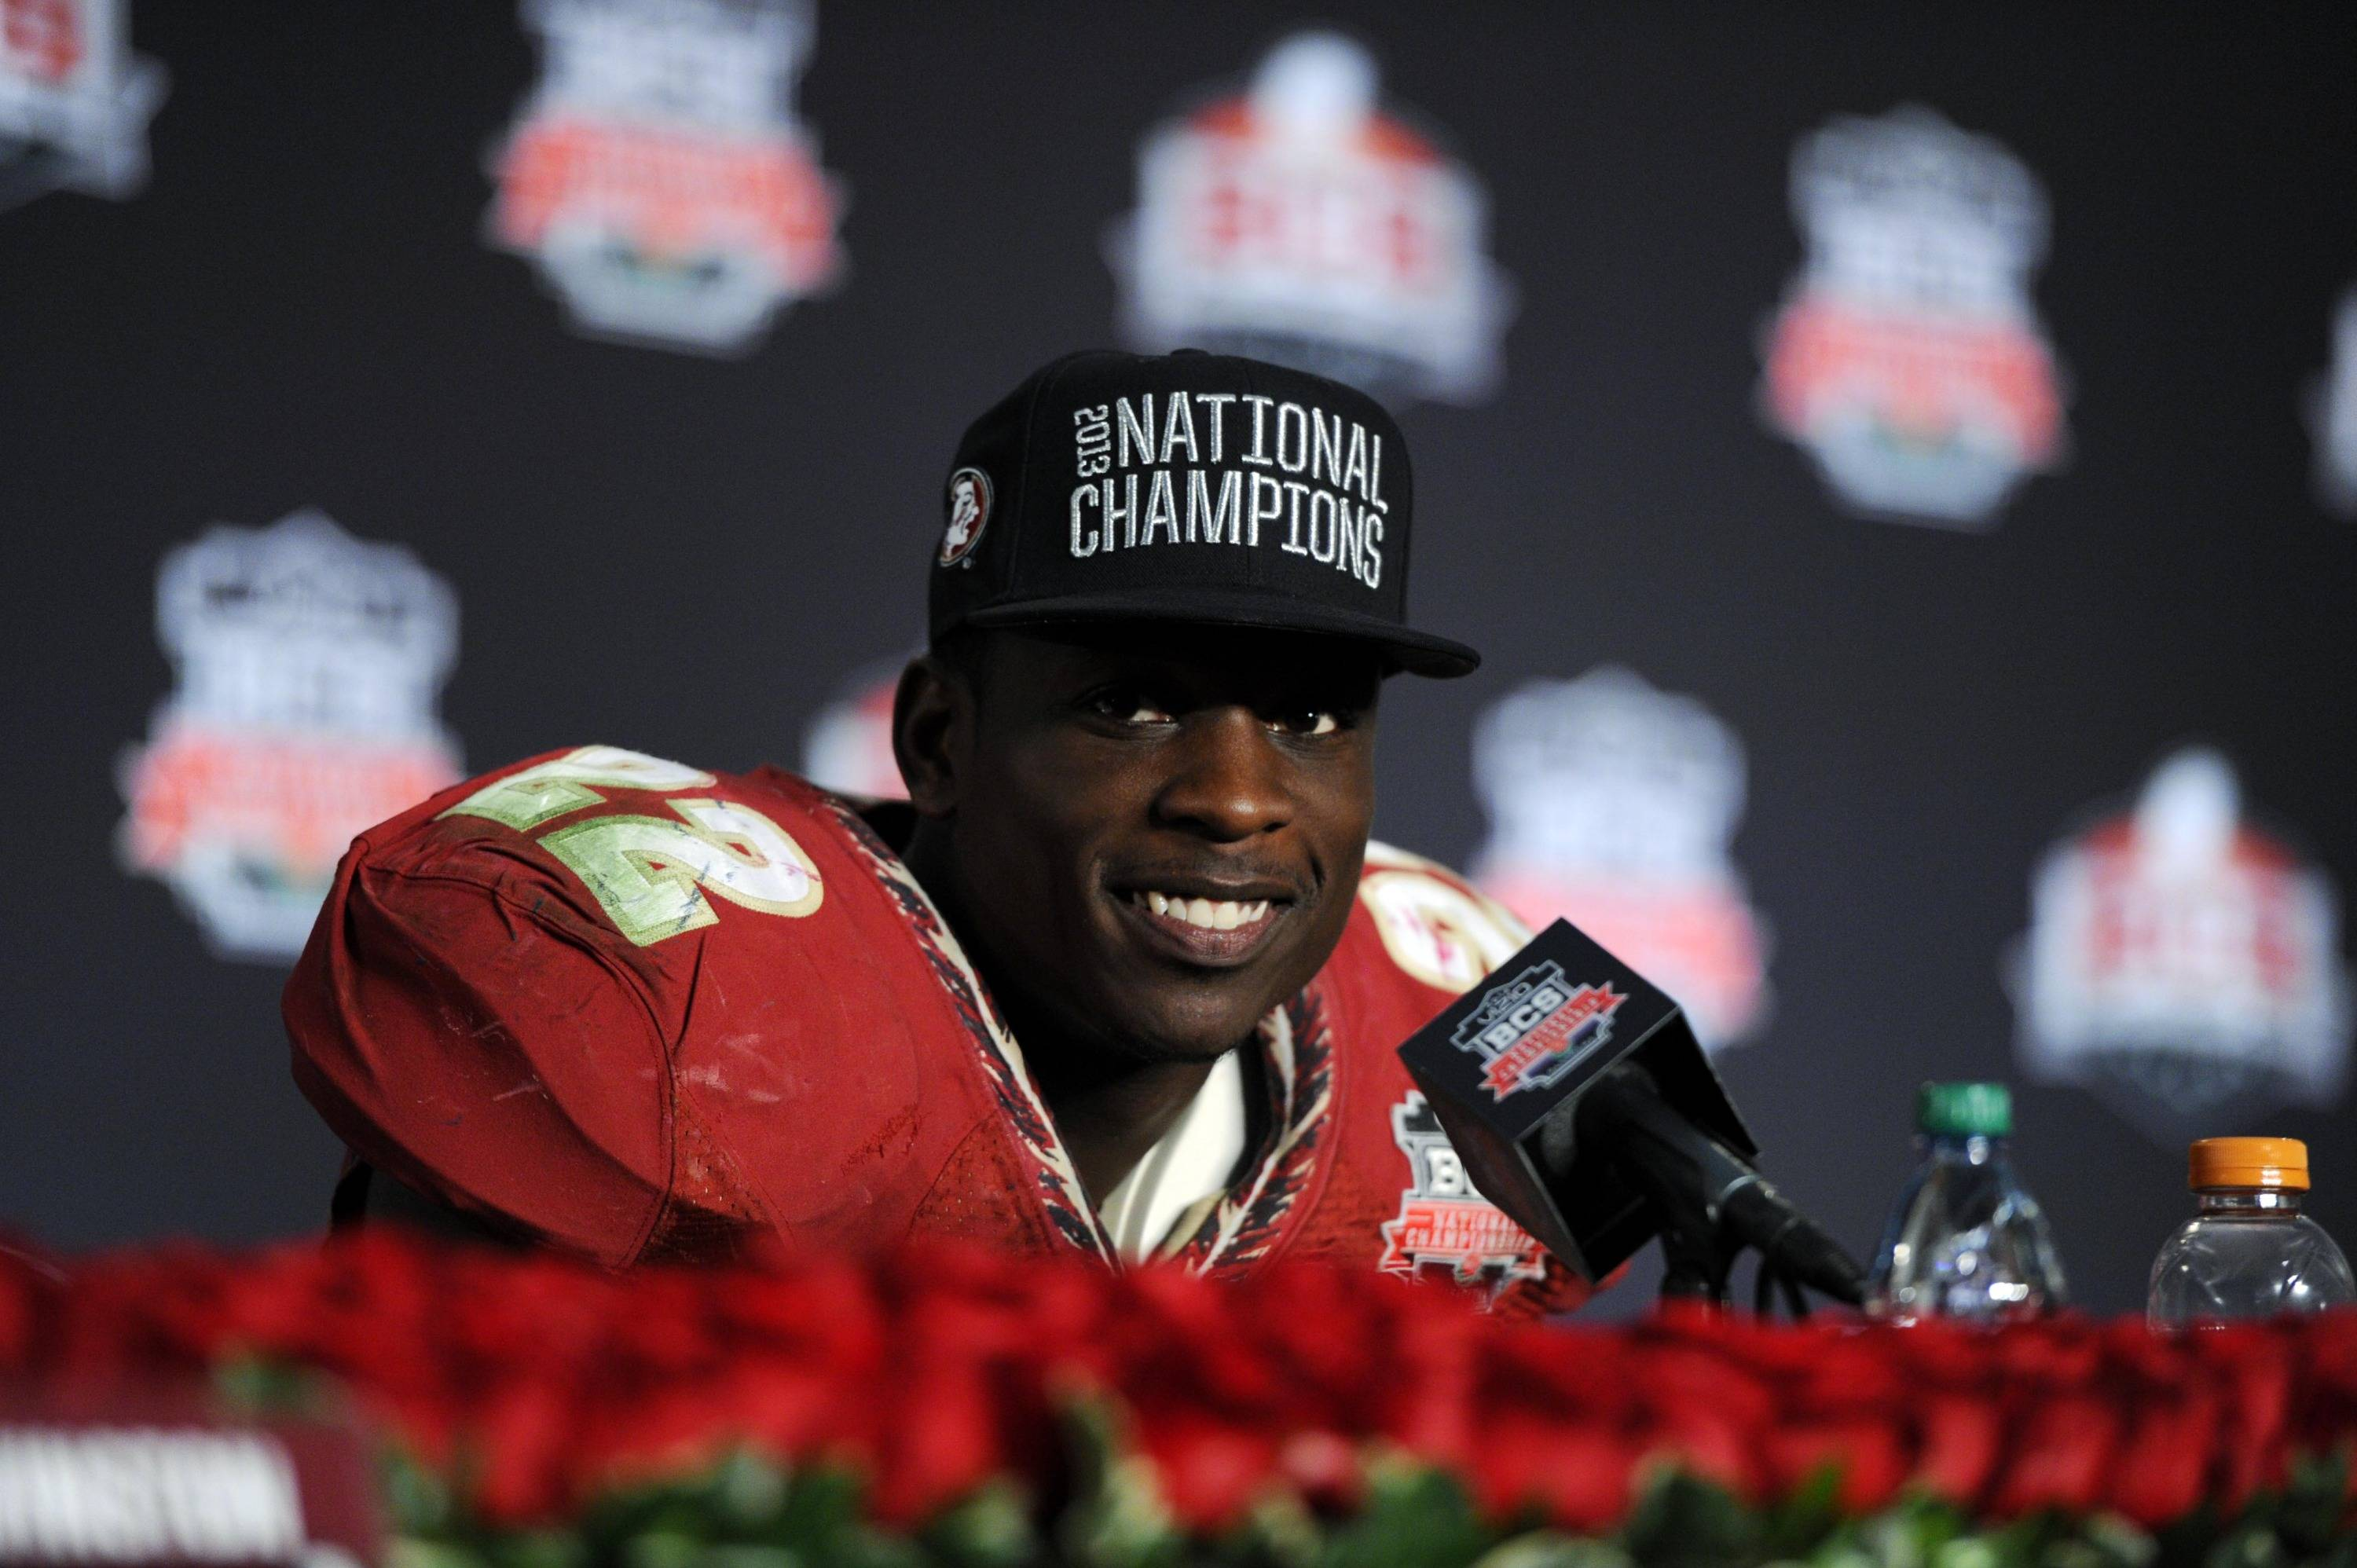 Jan 6, 2014; Pasadena, CA, USA; Florida State Seminoles linebacker Telvin Smith (22) at a press conference after the 2014 BCS National Championship game against the Auburn Tigers at the Rose Bowl.  Mandatory Credit: Kirby Lee-USA TODAY Sports